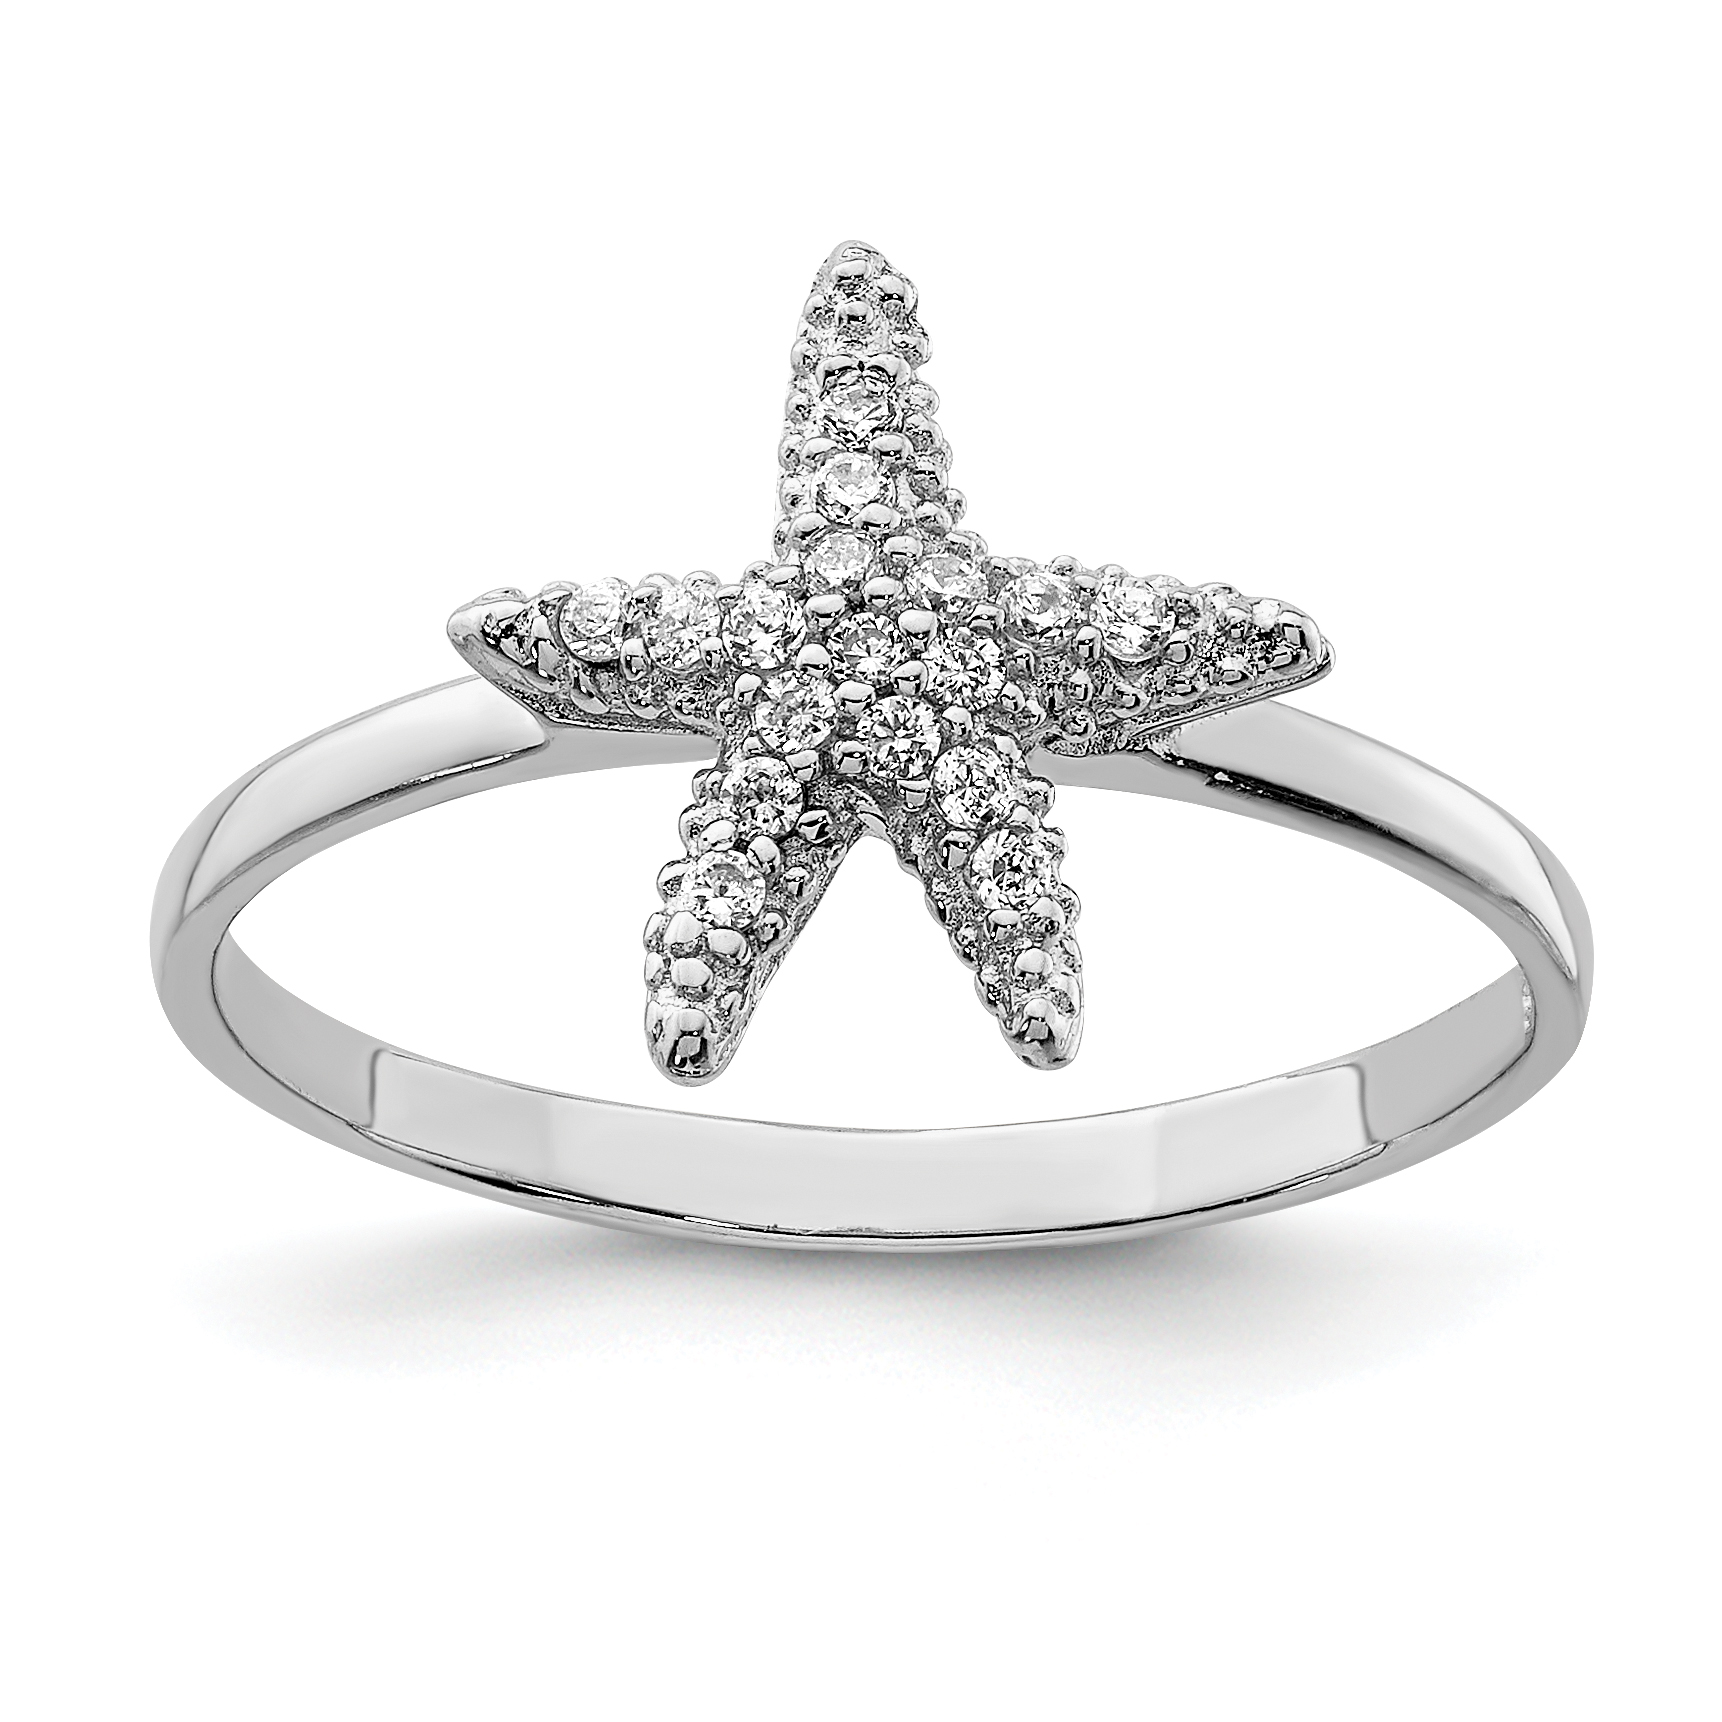 925 Sterling Silver Cubic Zirconia Cz Starfish Band Ring Size 7.00 Sea Shell Life Fine Jewelry Gifts For Women For Her - image 3 de 3